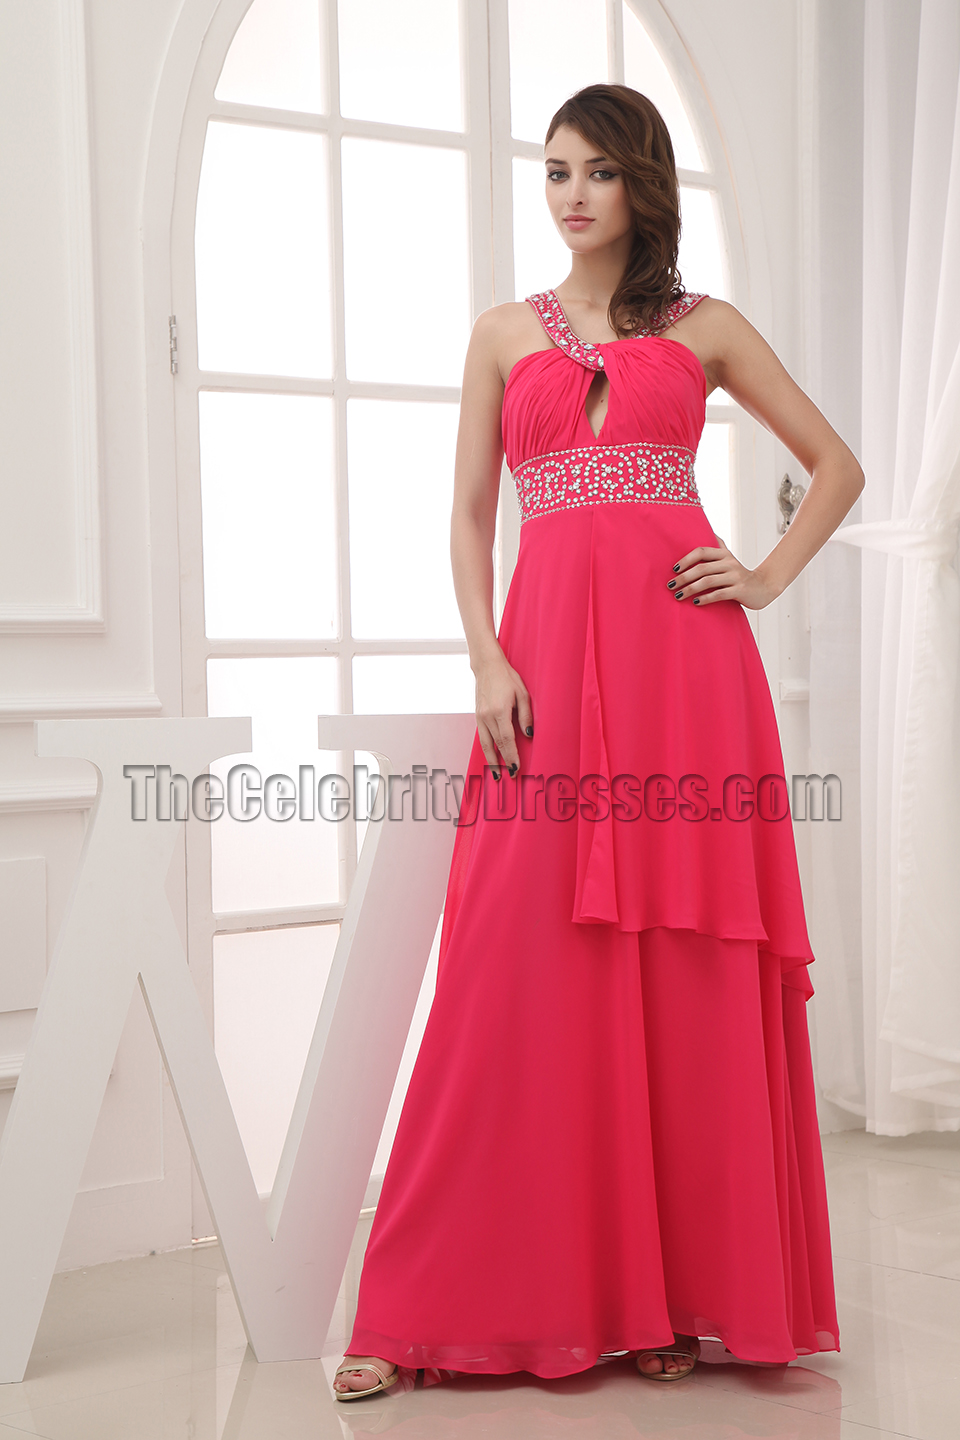 Fuchsia beaded prom gown evening bridesmaid dresses fuchsia beaded prom gown evening bridesmaid dresses thecelebritydresses ombrellifo Choice Image